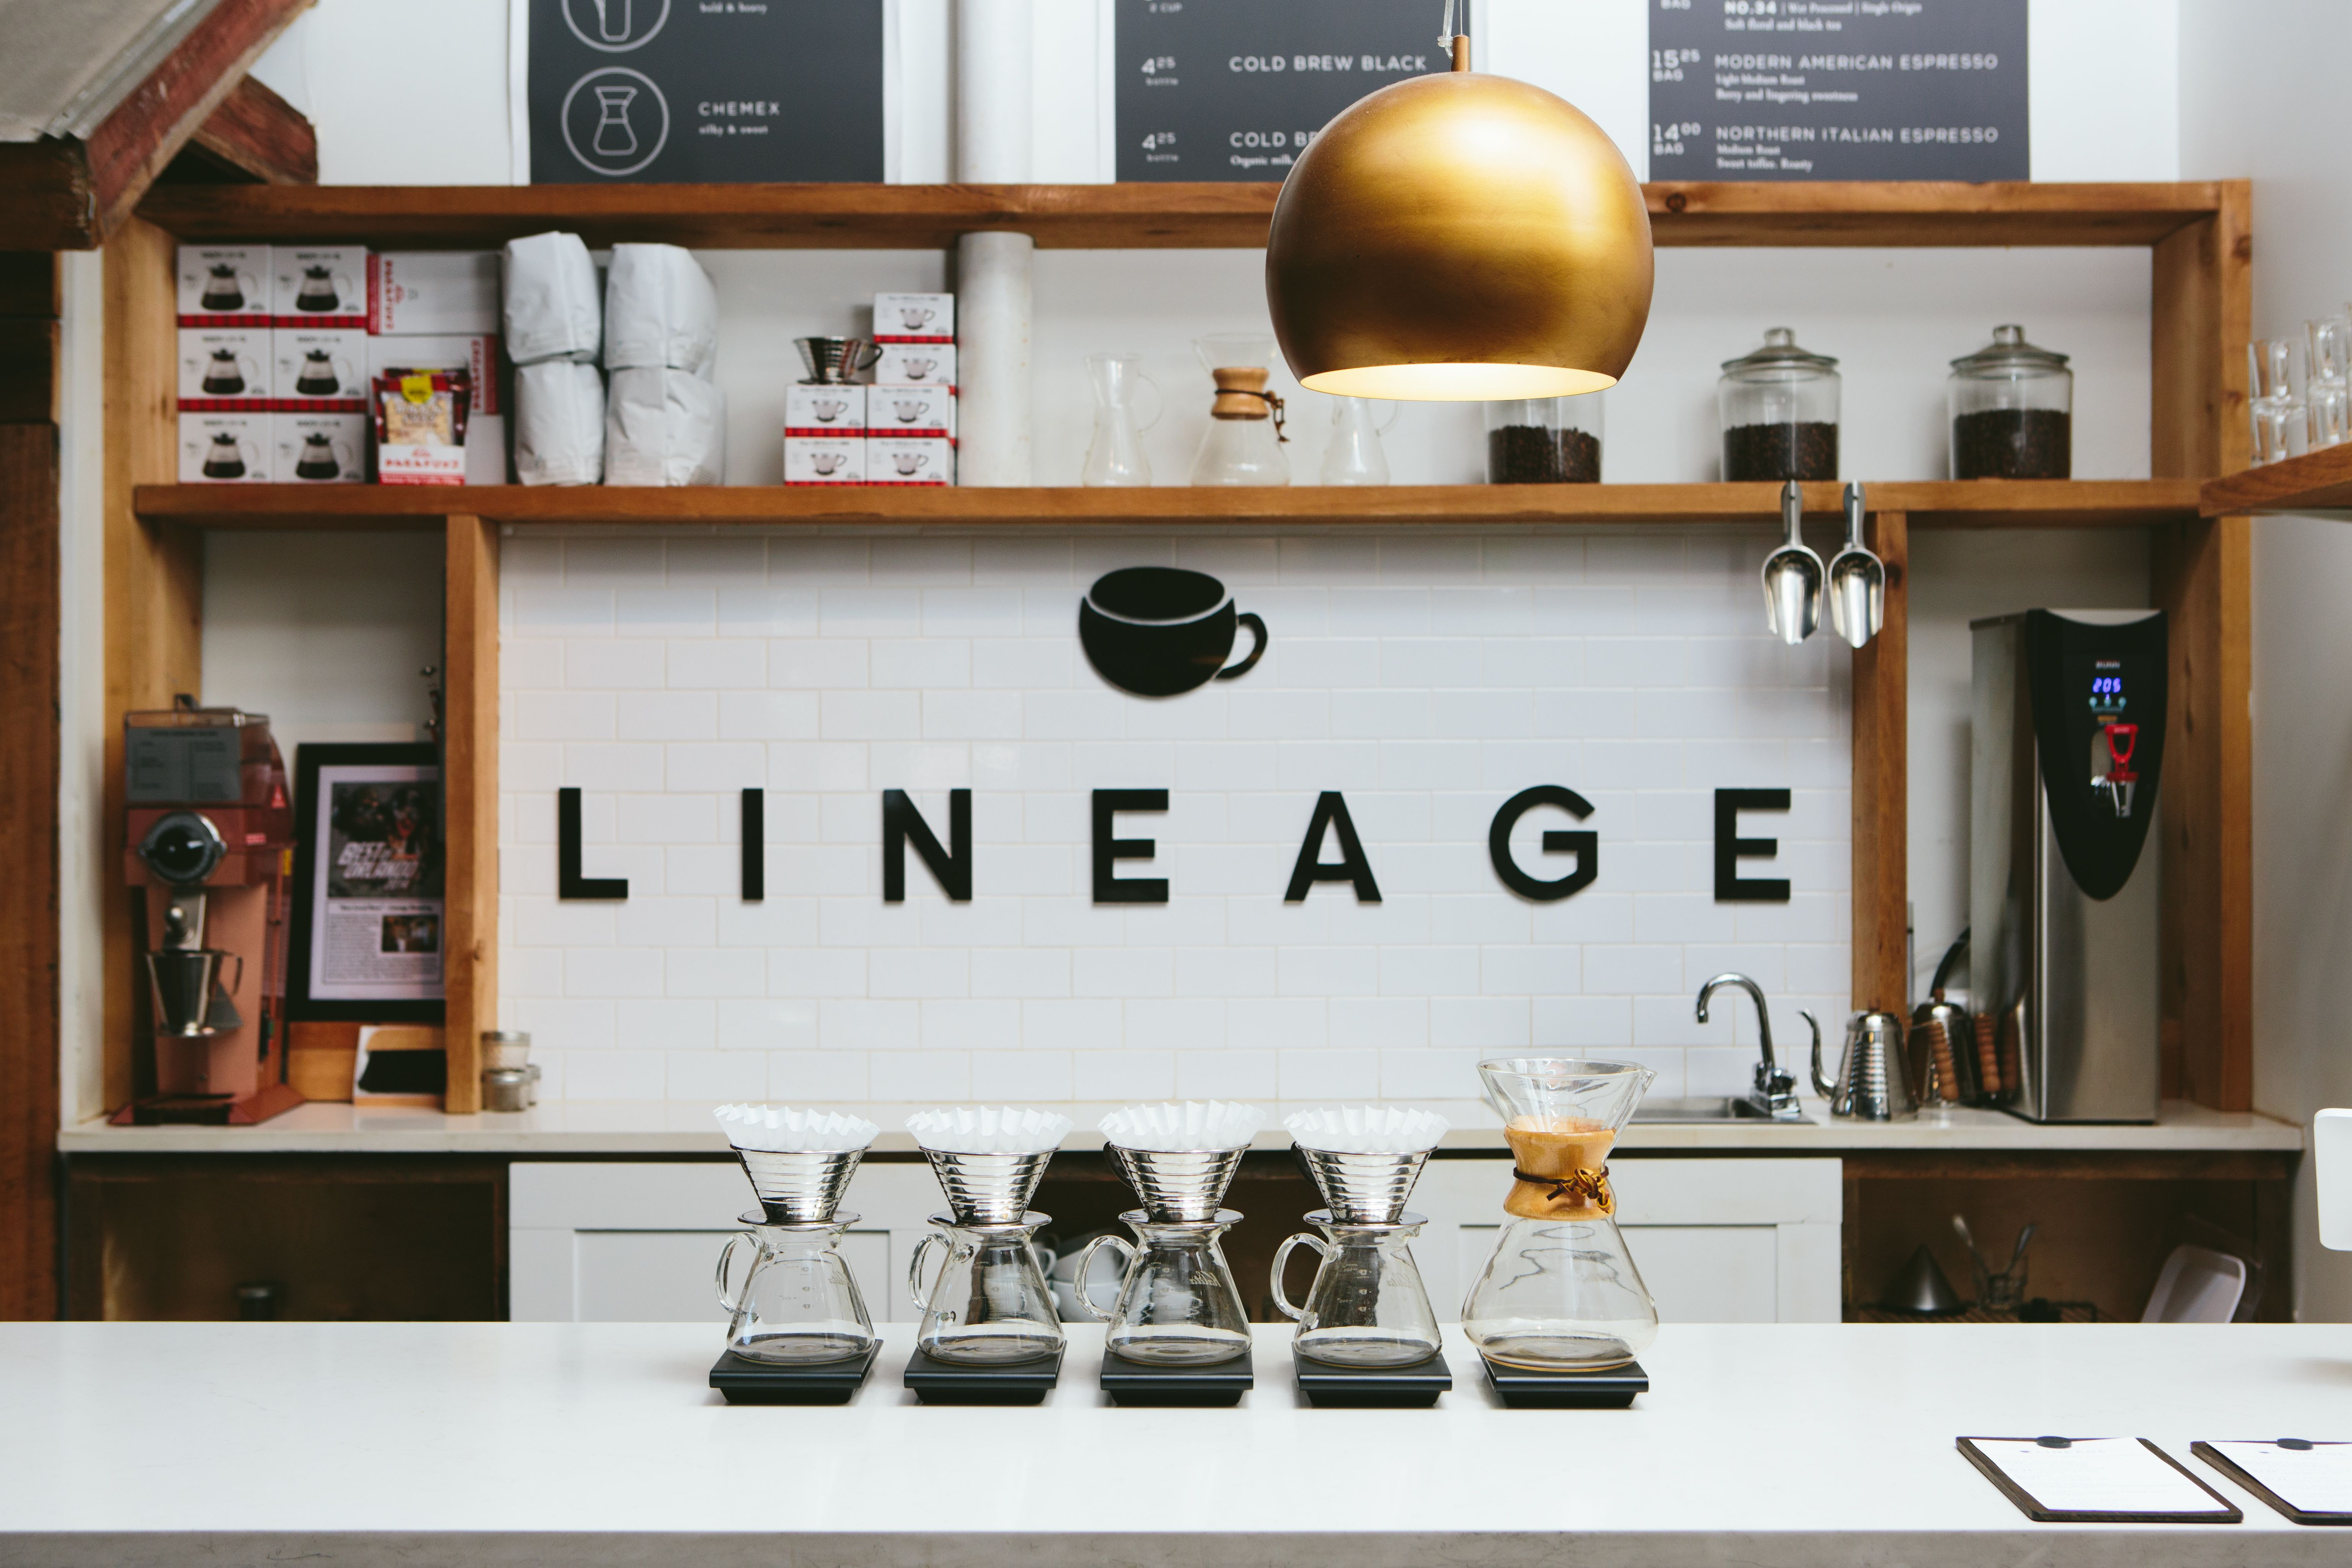 Lineage coffee roasting the best coffee shop in florida